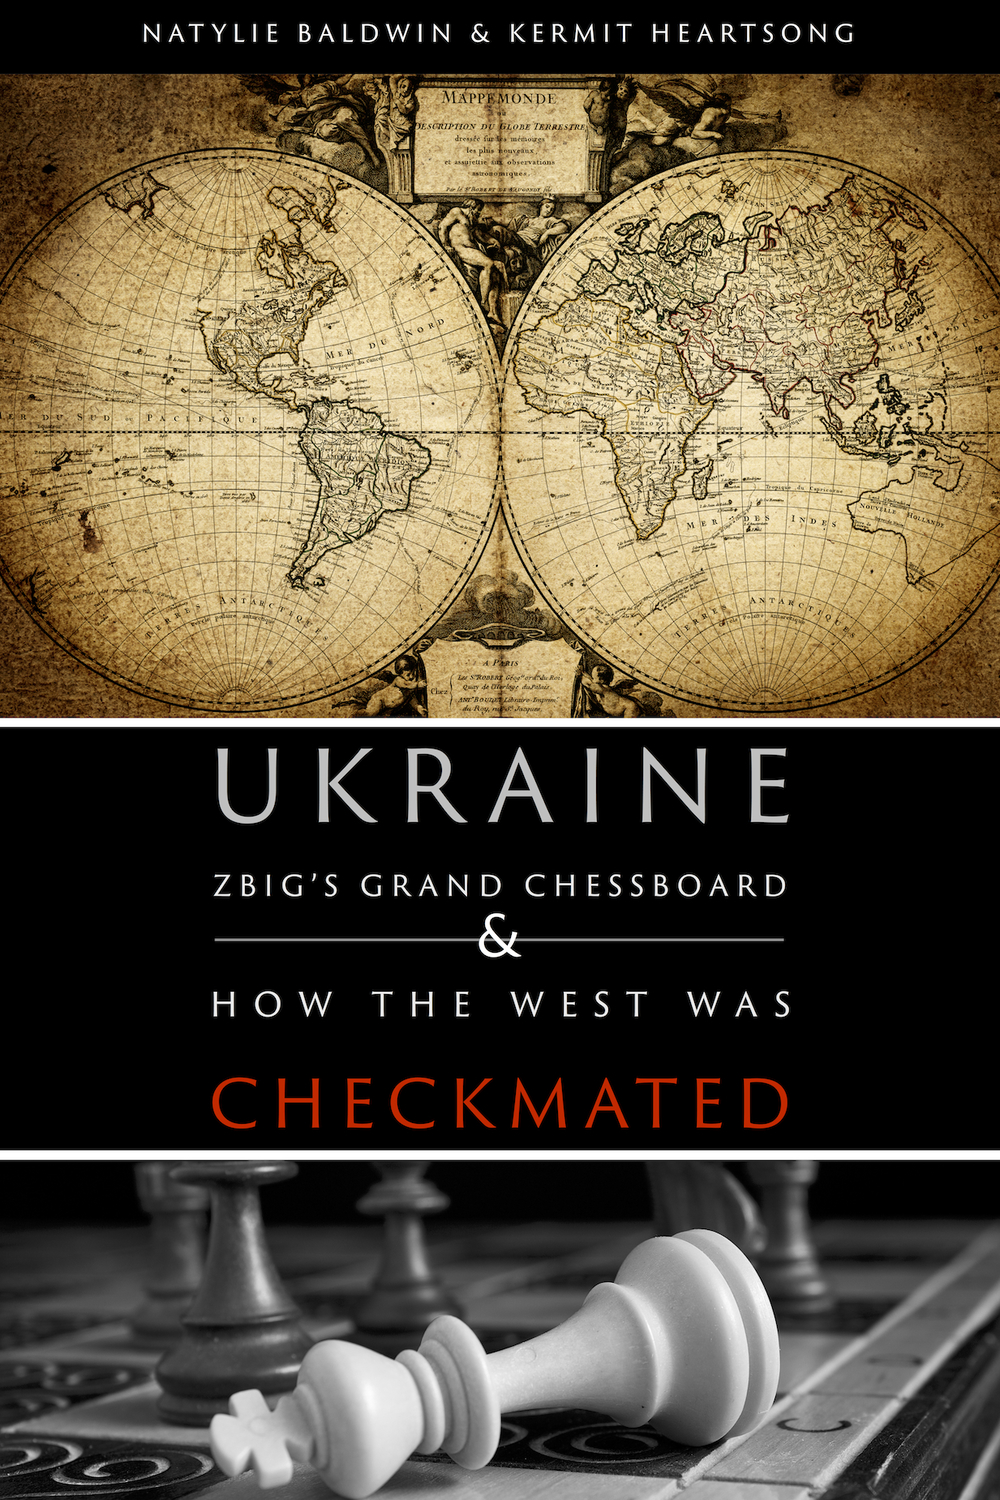 BOOK LAYS OUT HOW BRZEZINSKI'S 'GRAND CHESSBOARD' WAS TOPPLED RUSSIA INSIDER NOV. 10th, 2015